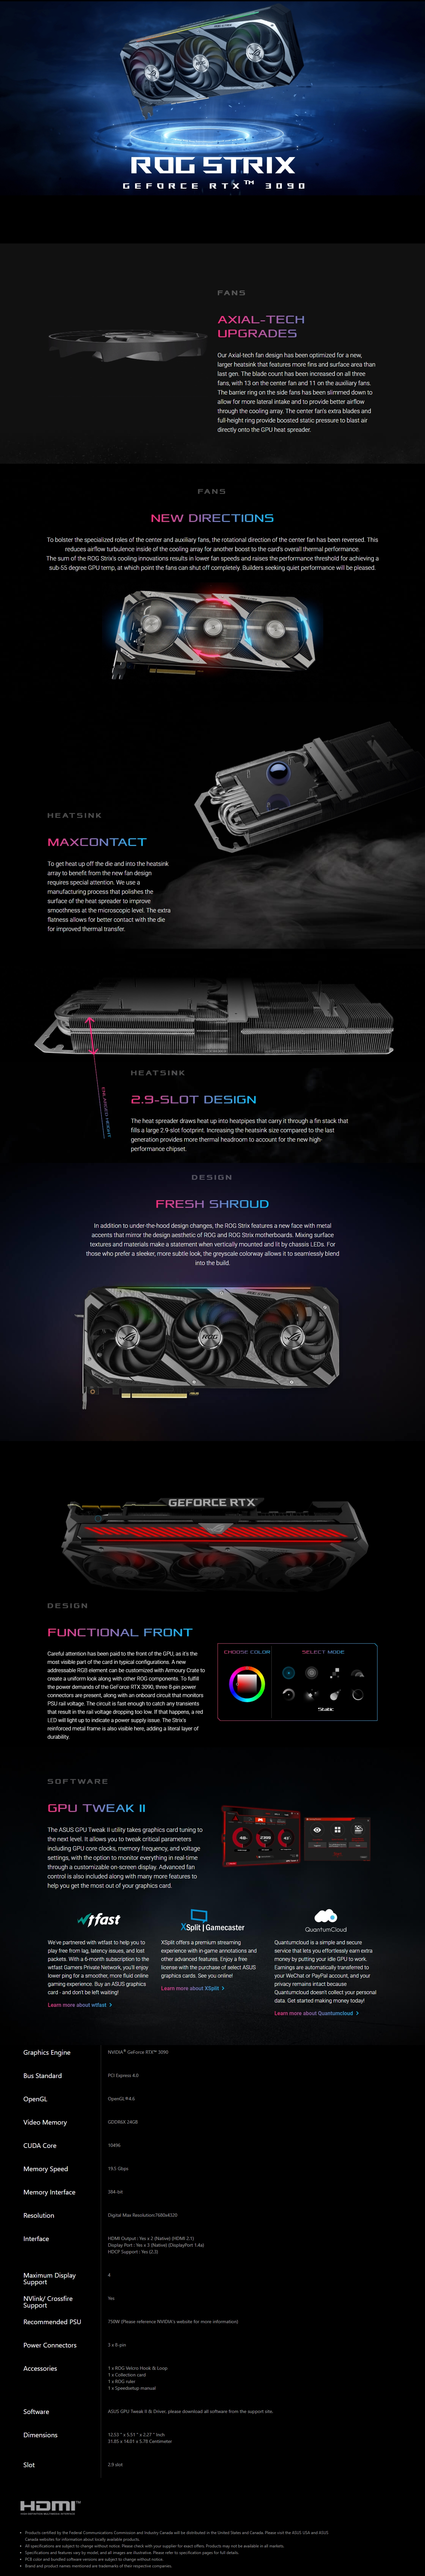 A large marketing image providing additional information about the product ASUS GeForce RTX 3090 ROG Strix Gaming OC 24GB GDDR6X - Additional alt info not provided